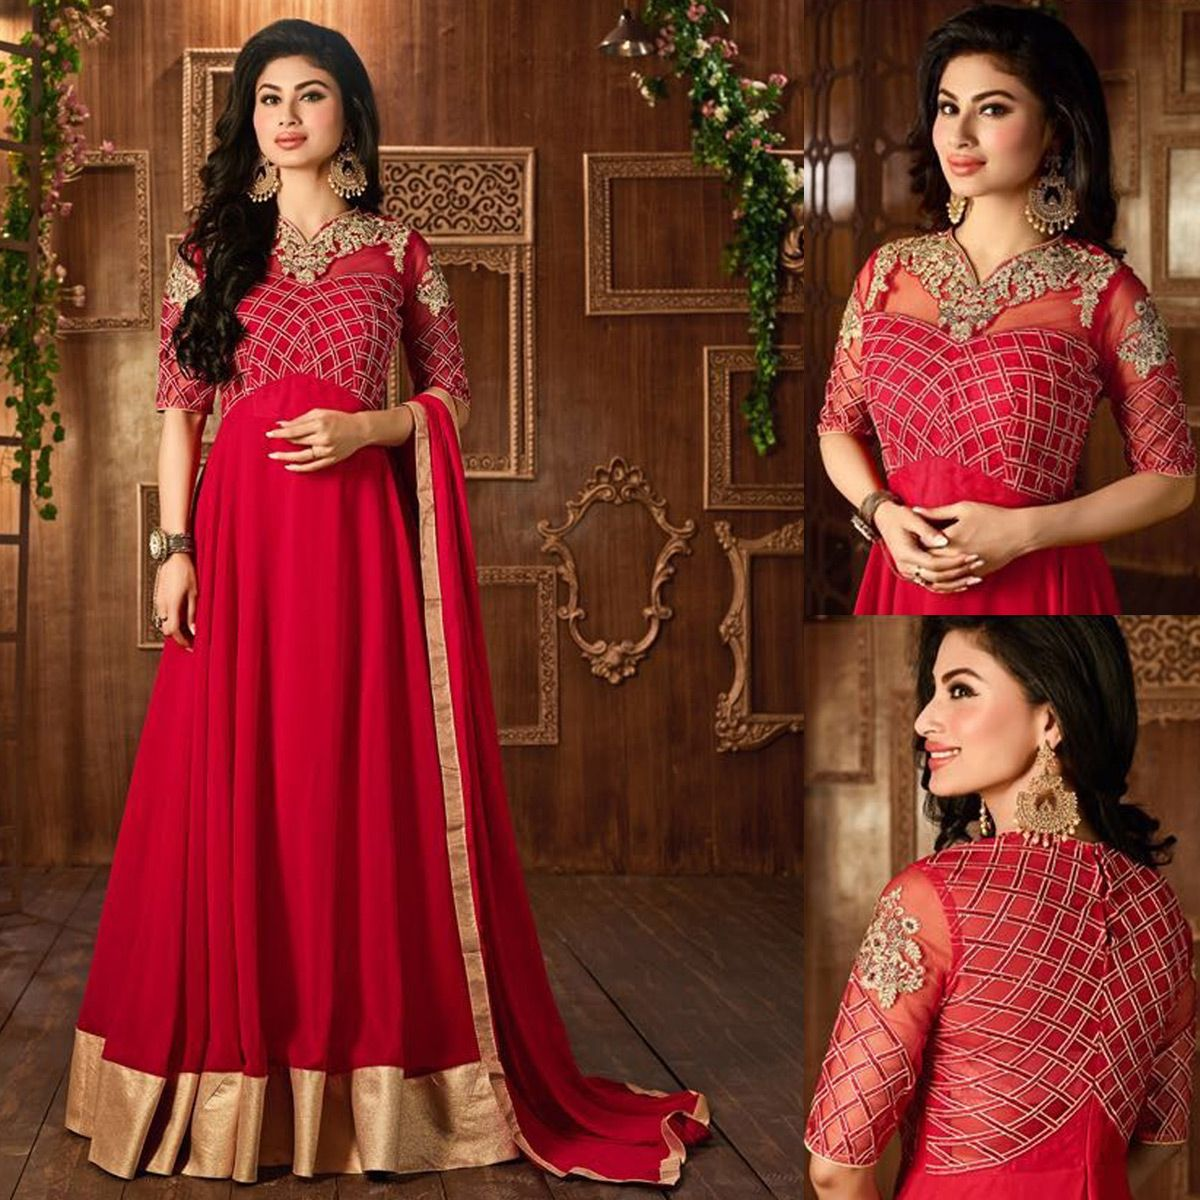 Salwar kameez with red dupatta perfect for party wear oh so red